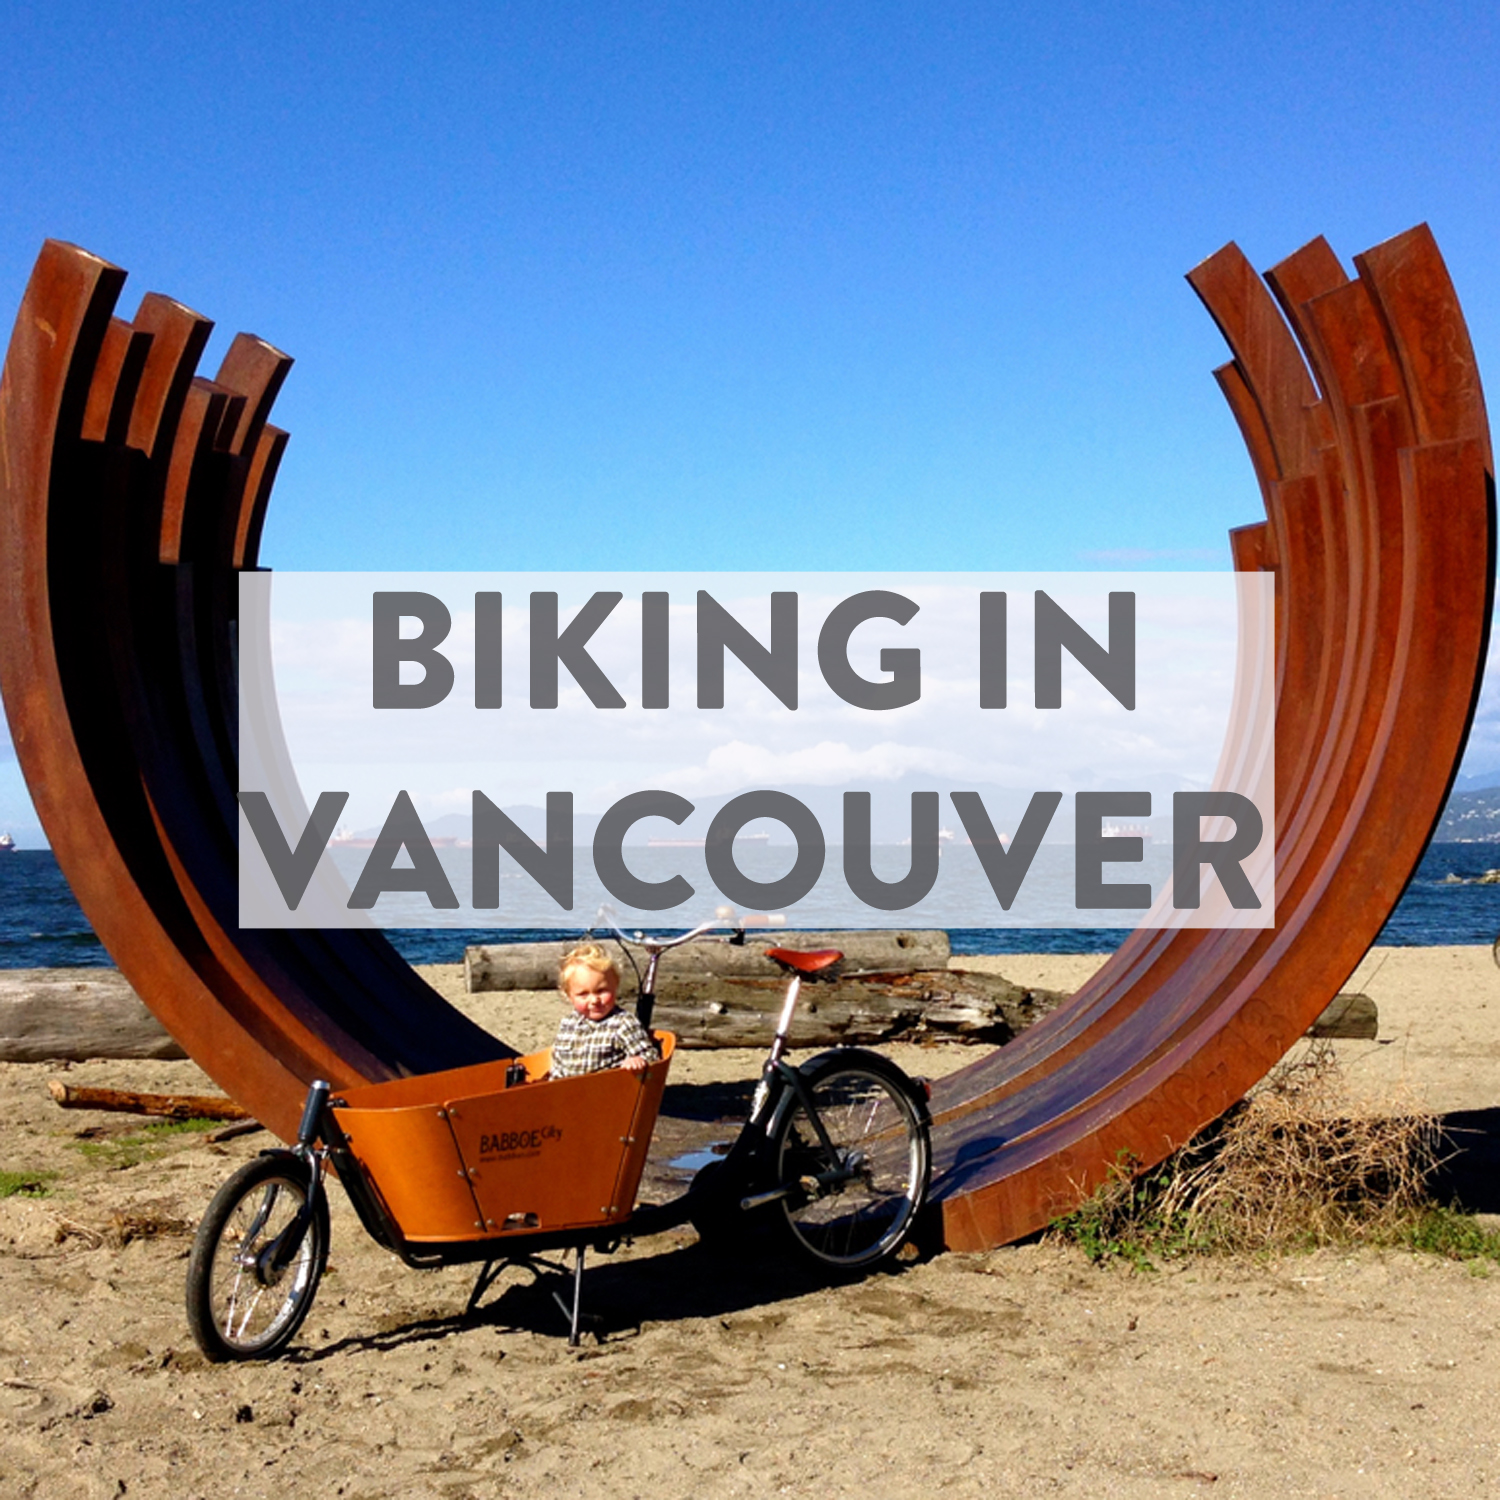 bikabout-vancouver-ABOUT.jpg